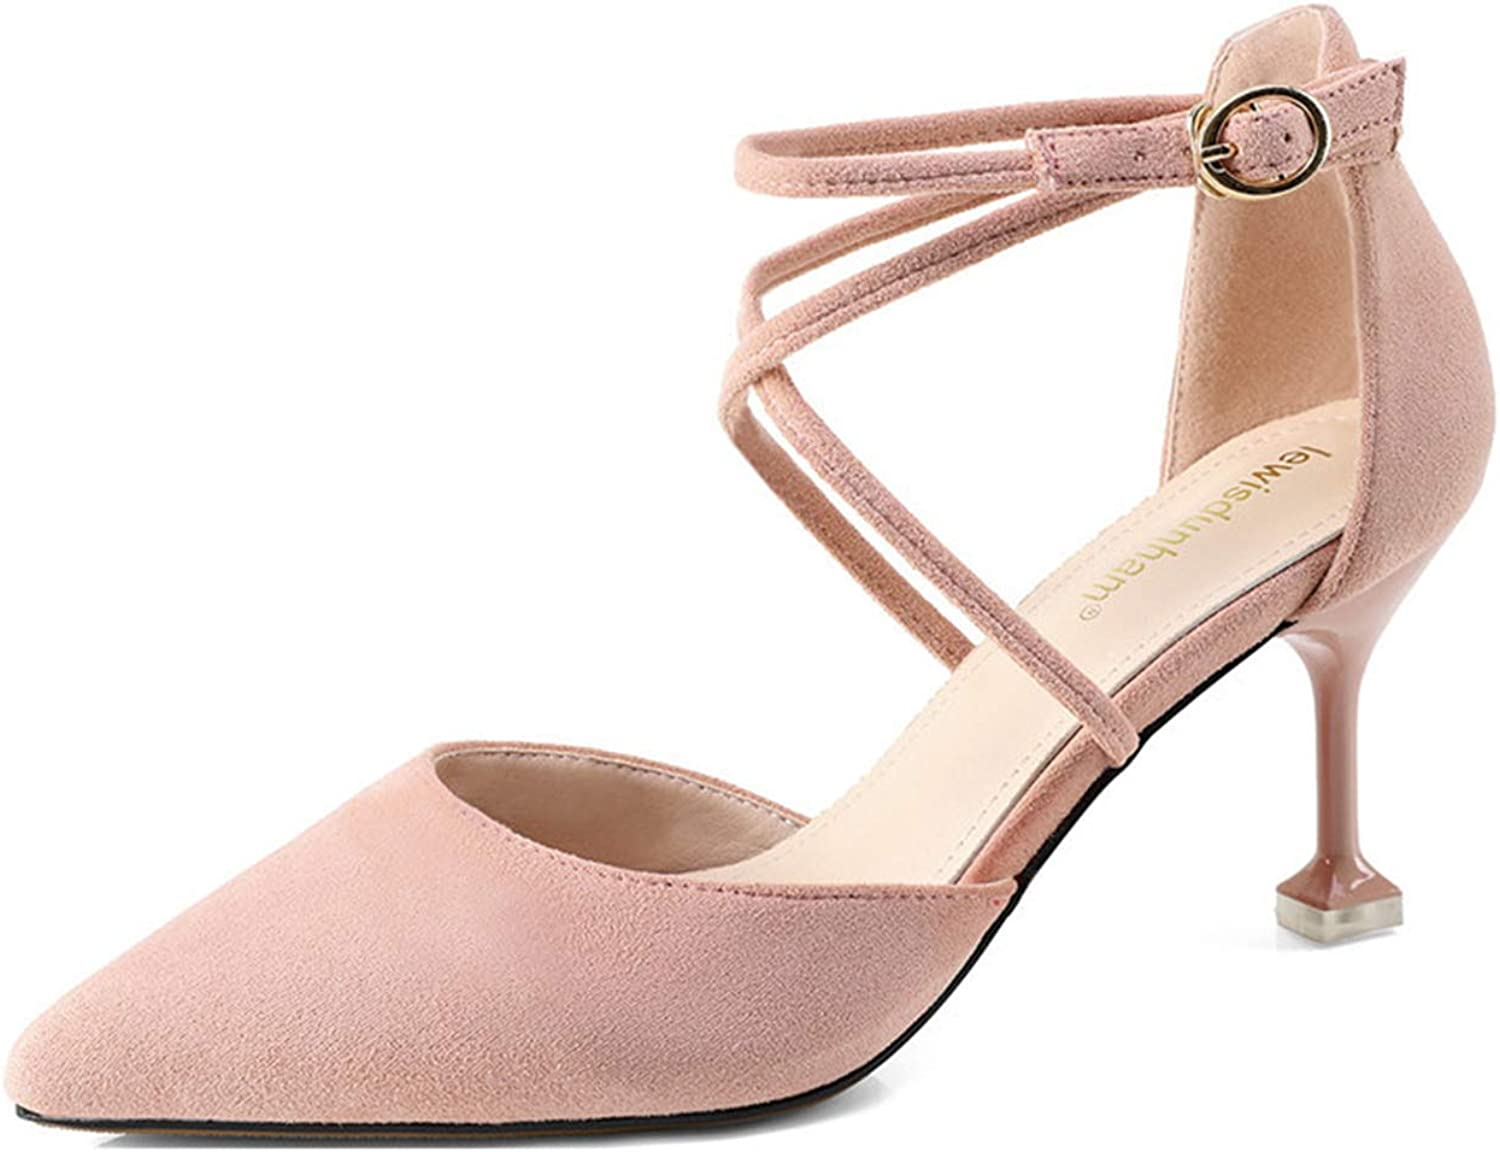 Mashiaoyi Women's Pointed-Toe Ankle-Strap Buckle Suede Heeled Sandals